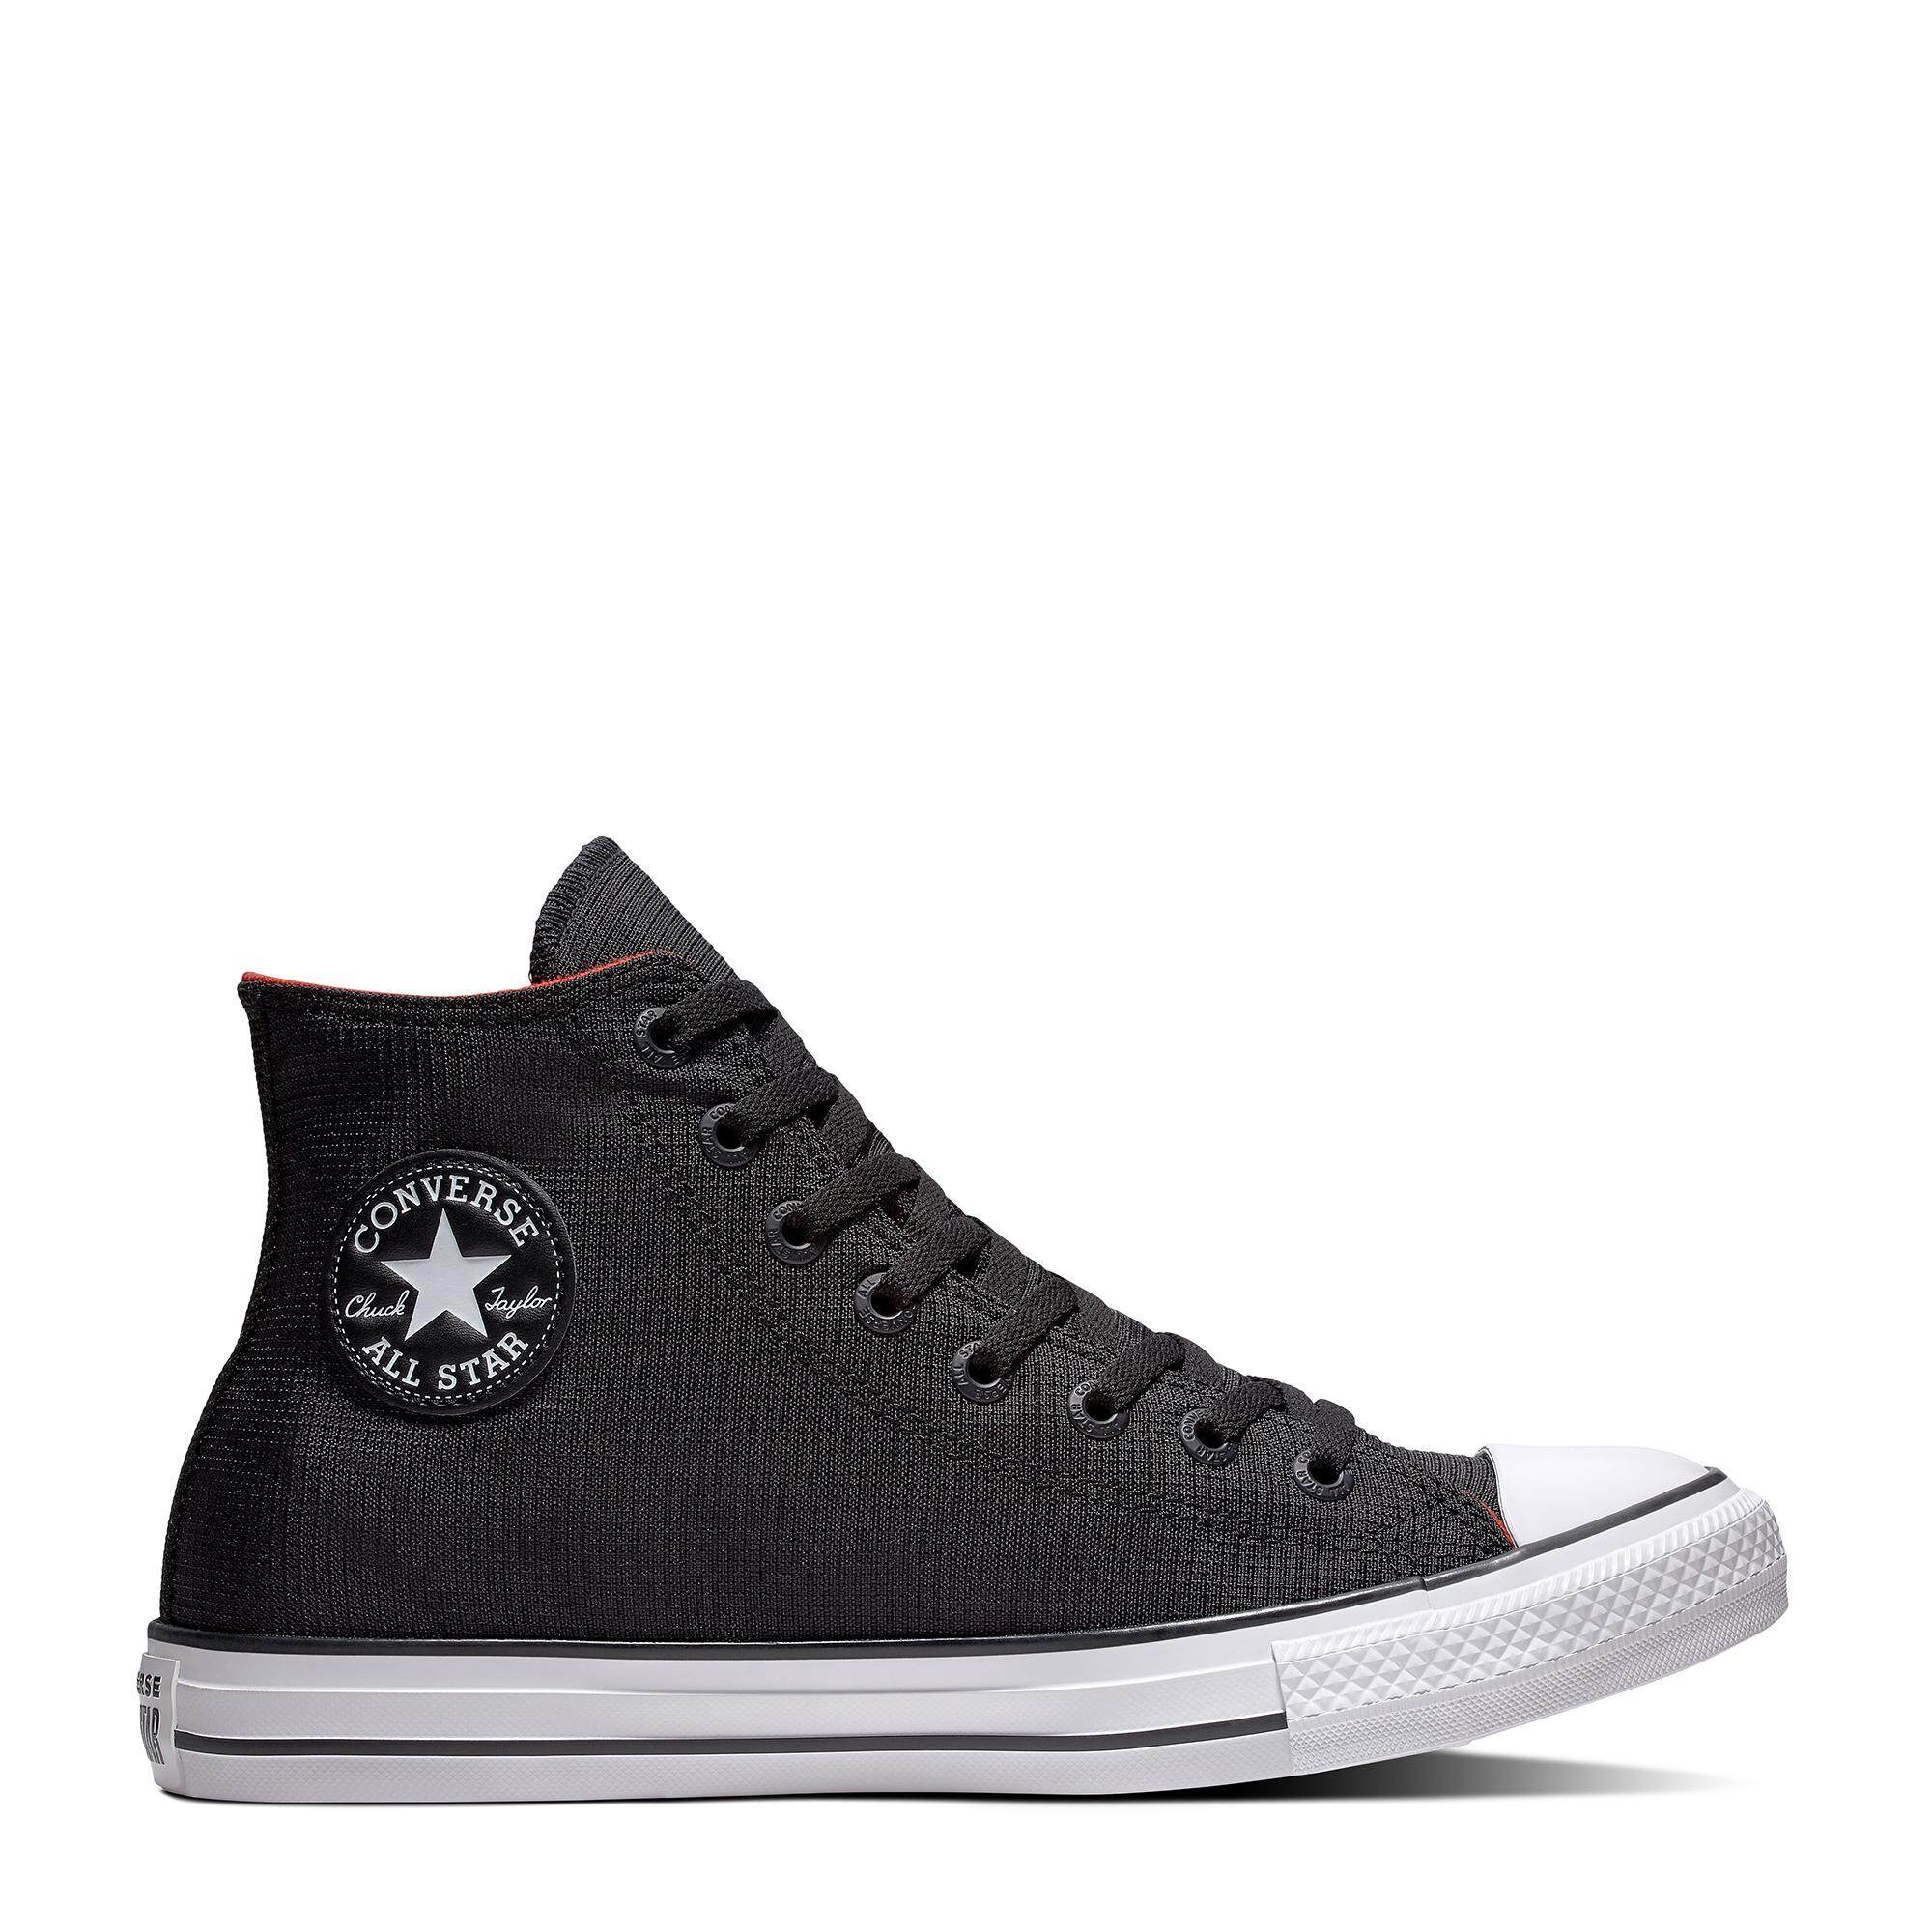 37a3fc3dcccf CONVERSE CHUCK TAYLOR ALL STAR - BLACK  ENAMEL RED  WHITE - 162390C